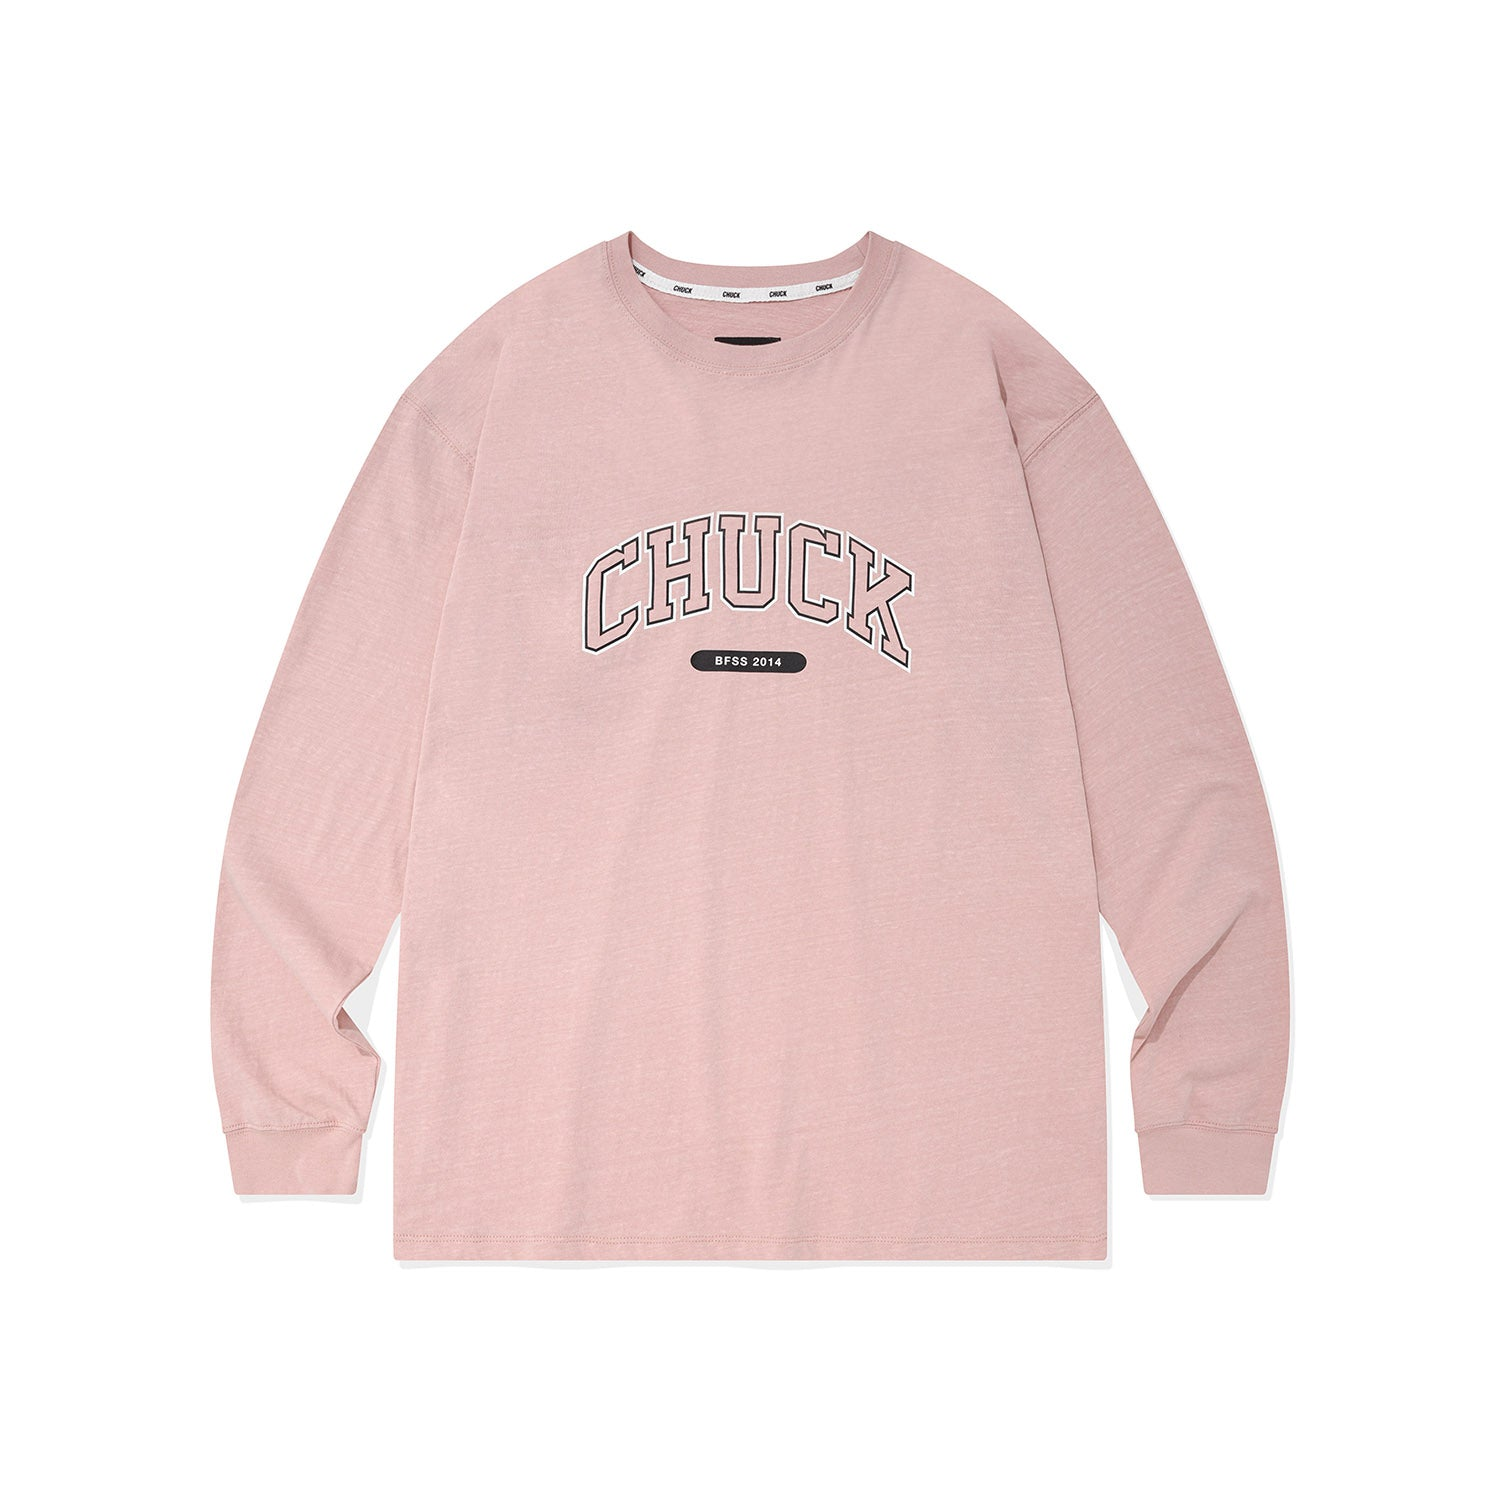 CHUCK BOLD ARCH LOGO L-S T (PINK) (6552810455158)